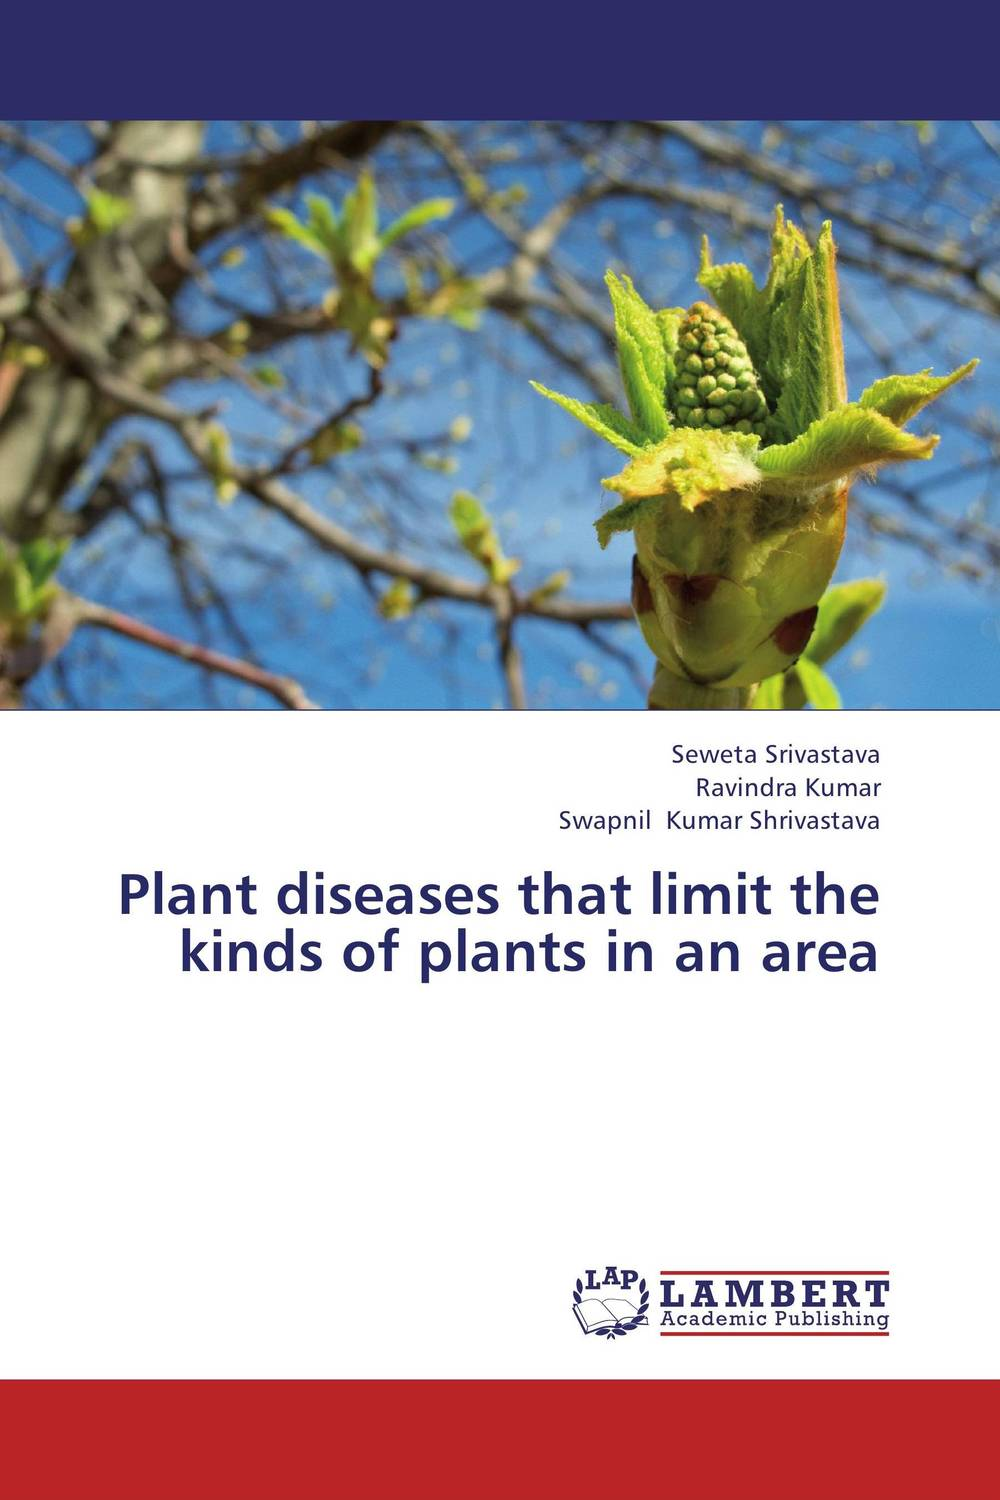 Plant diseases that limit the kinds of plants in an area